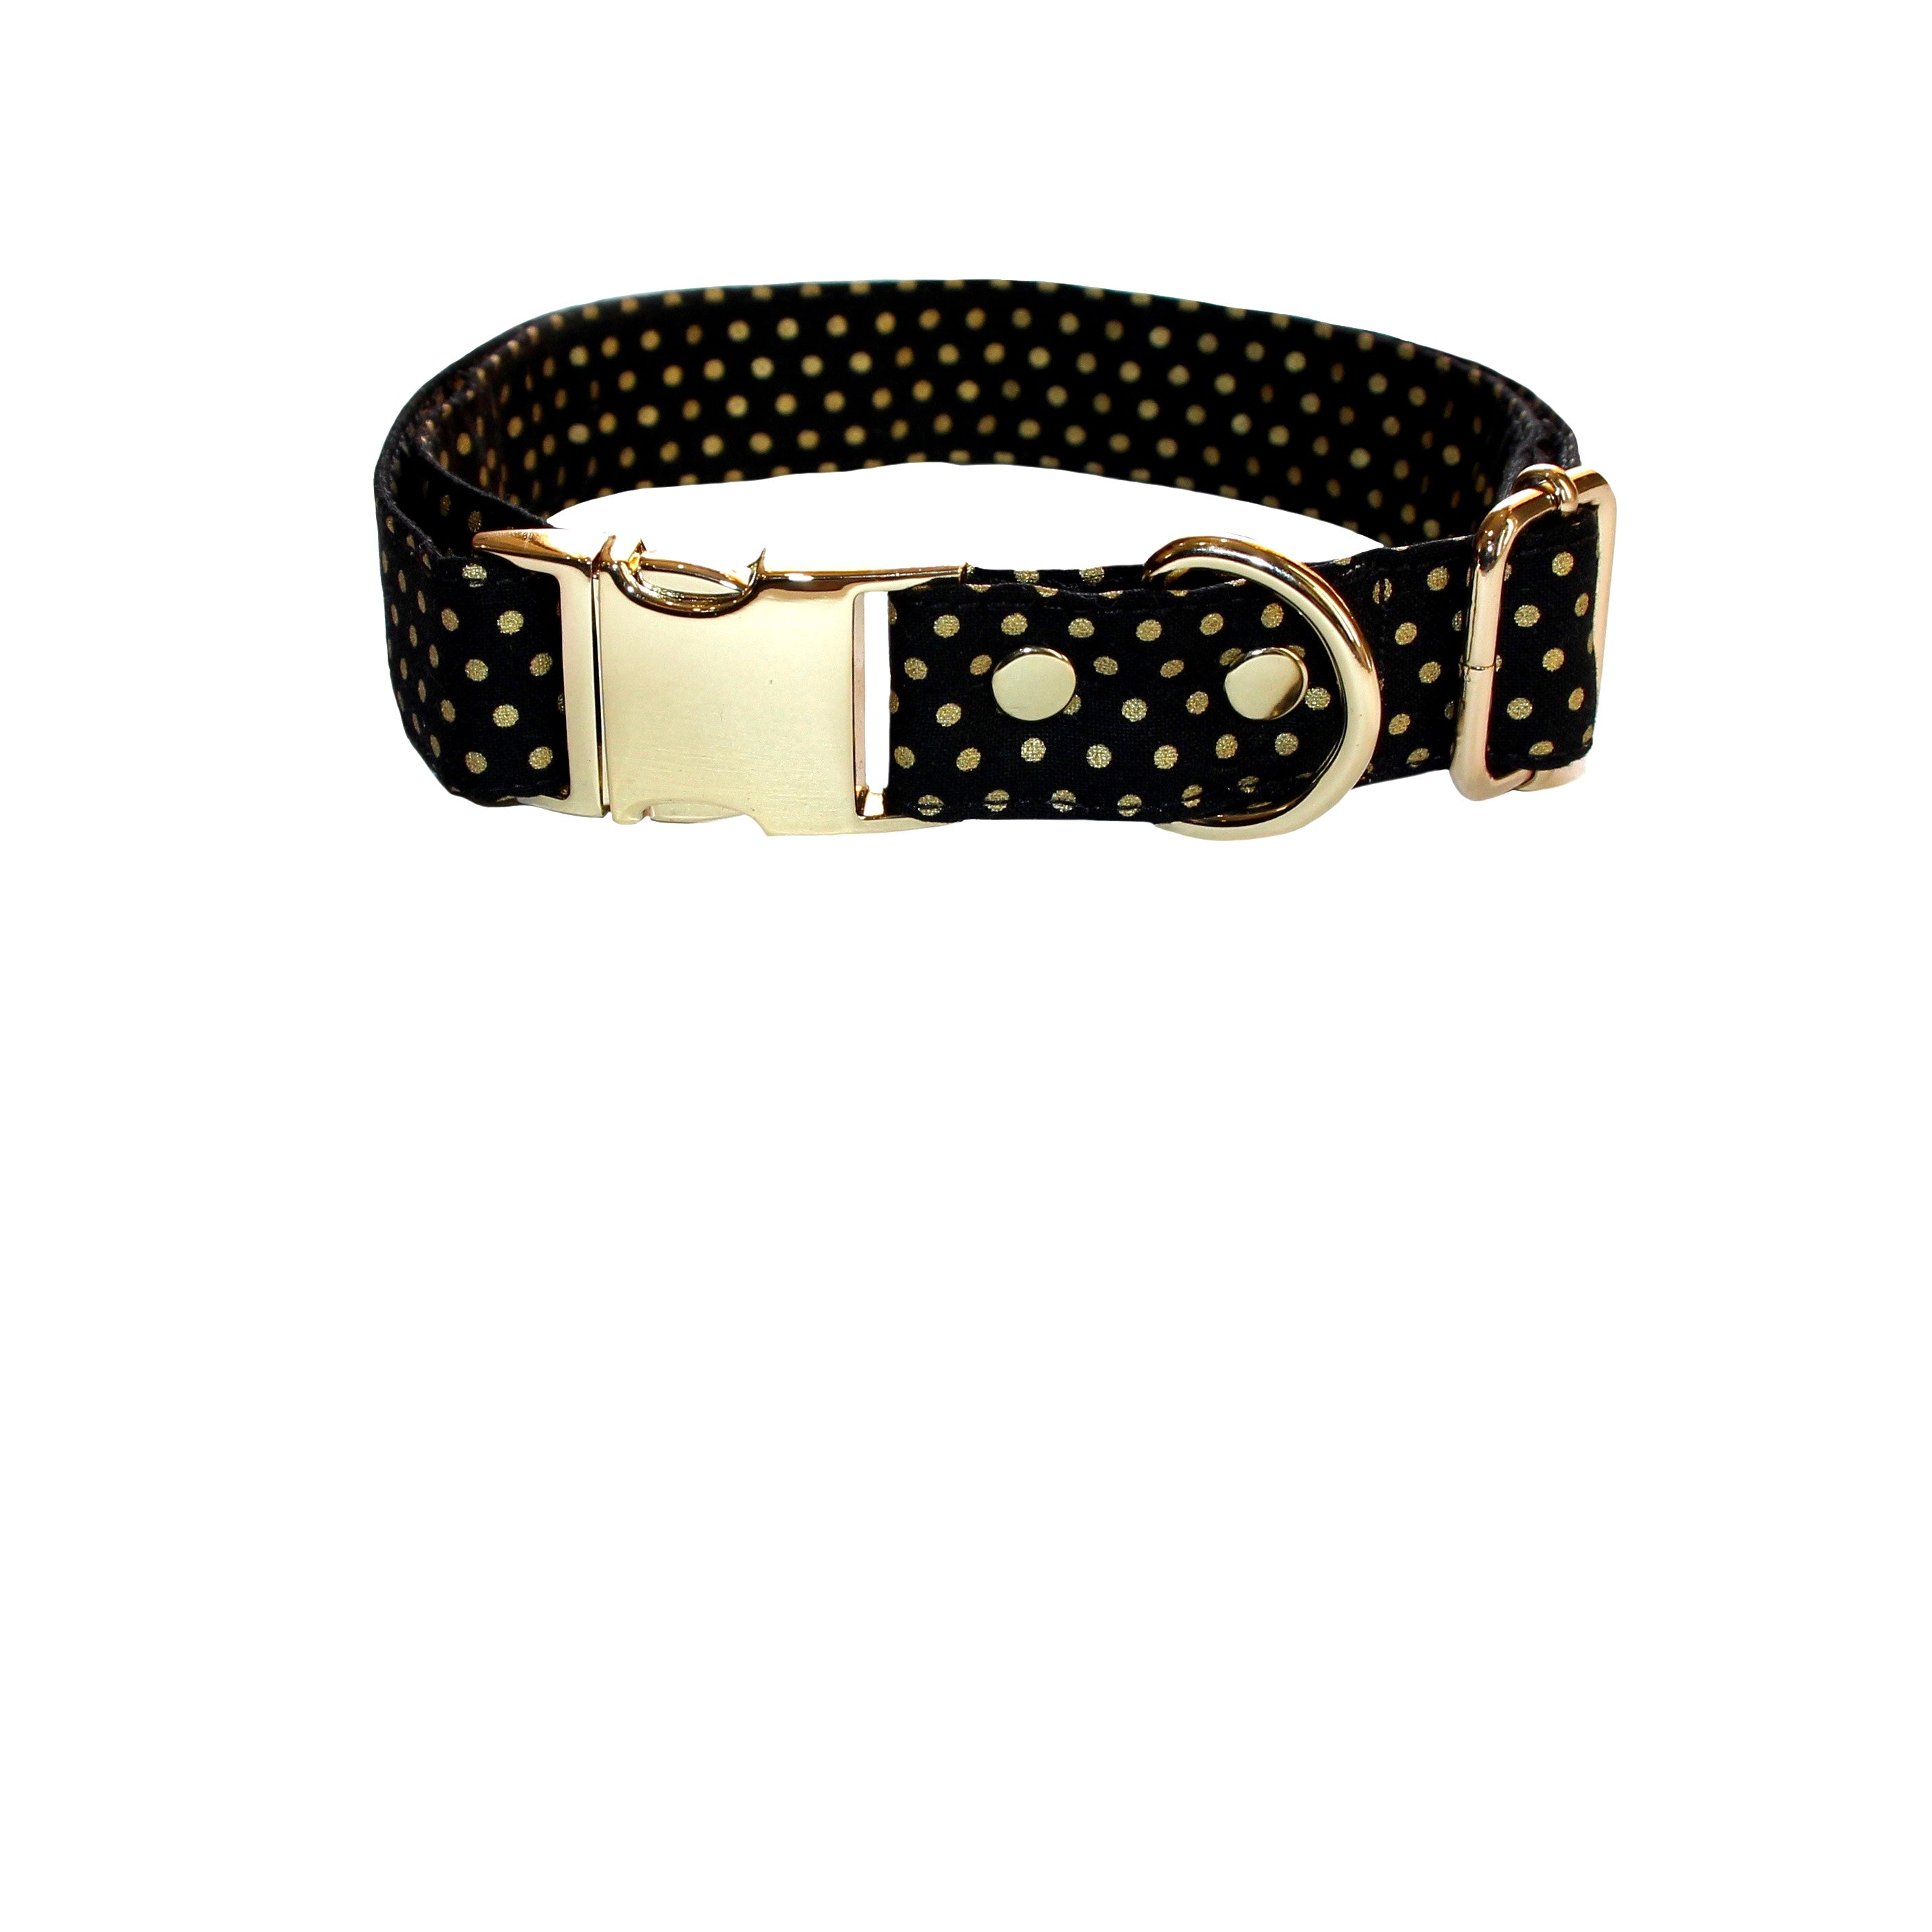 THE GOLD DOTS COLLAR